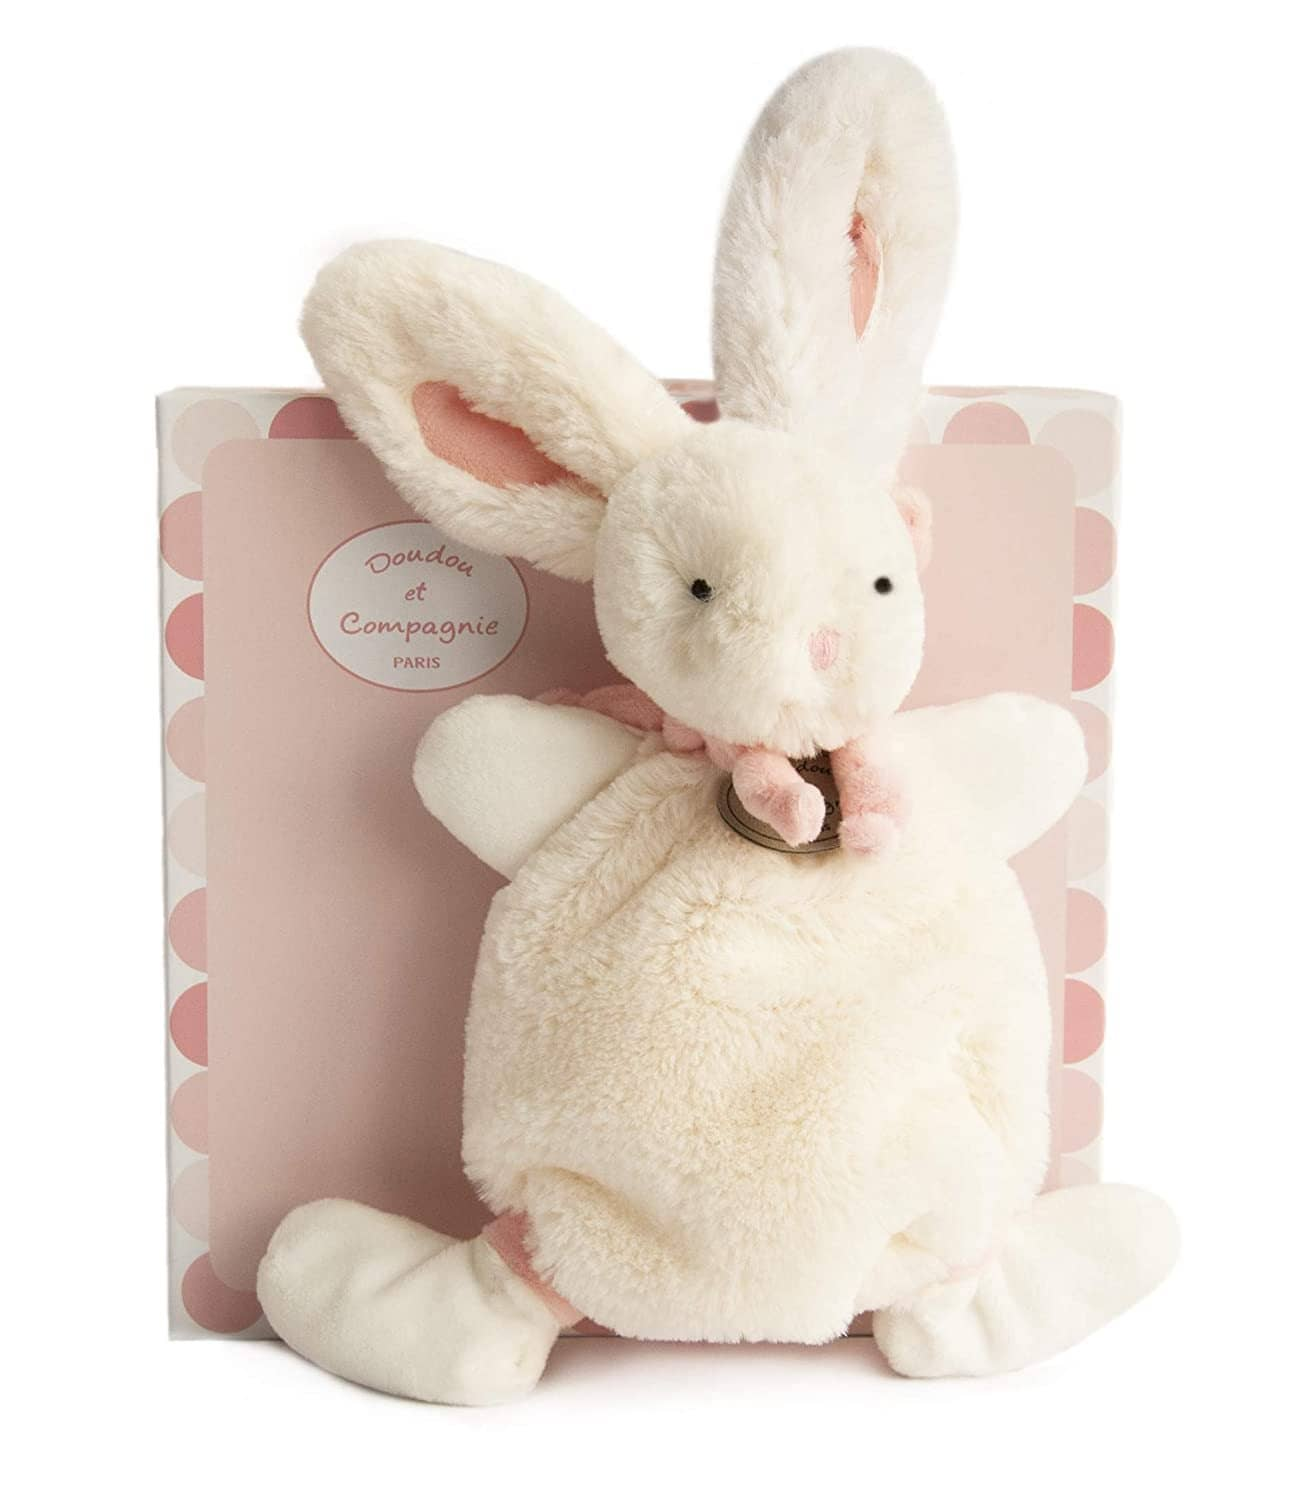 Doudou Et Compagnie Doudou Baby Security Blanket In Gift Box -Pink-Kidding Around NYC